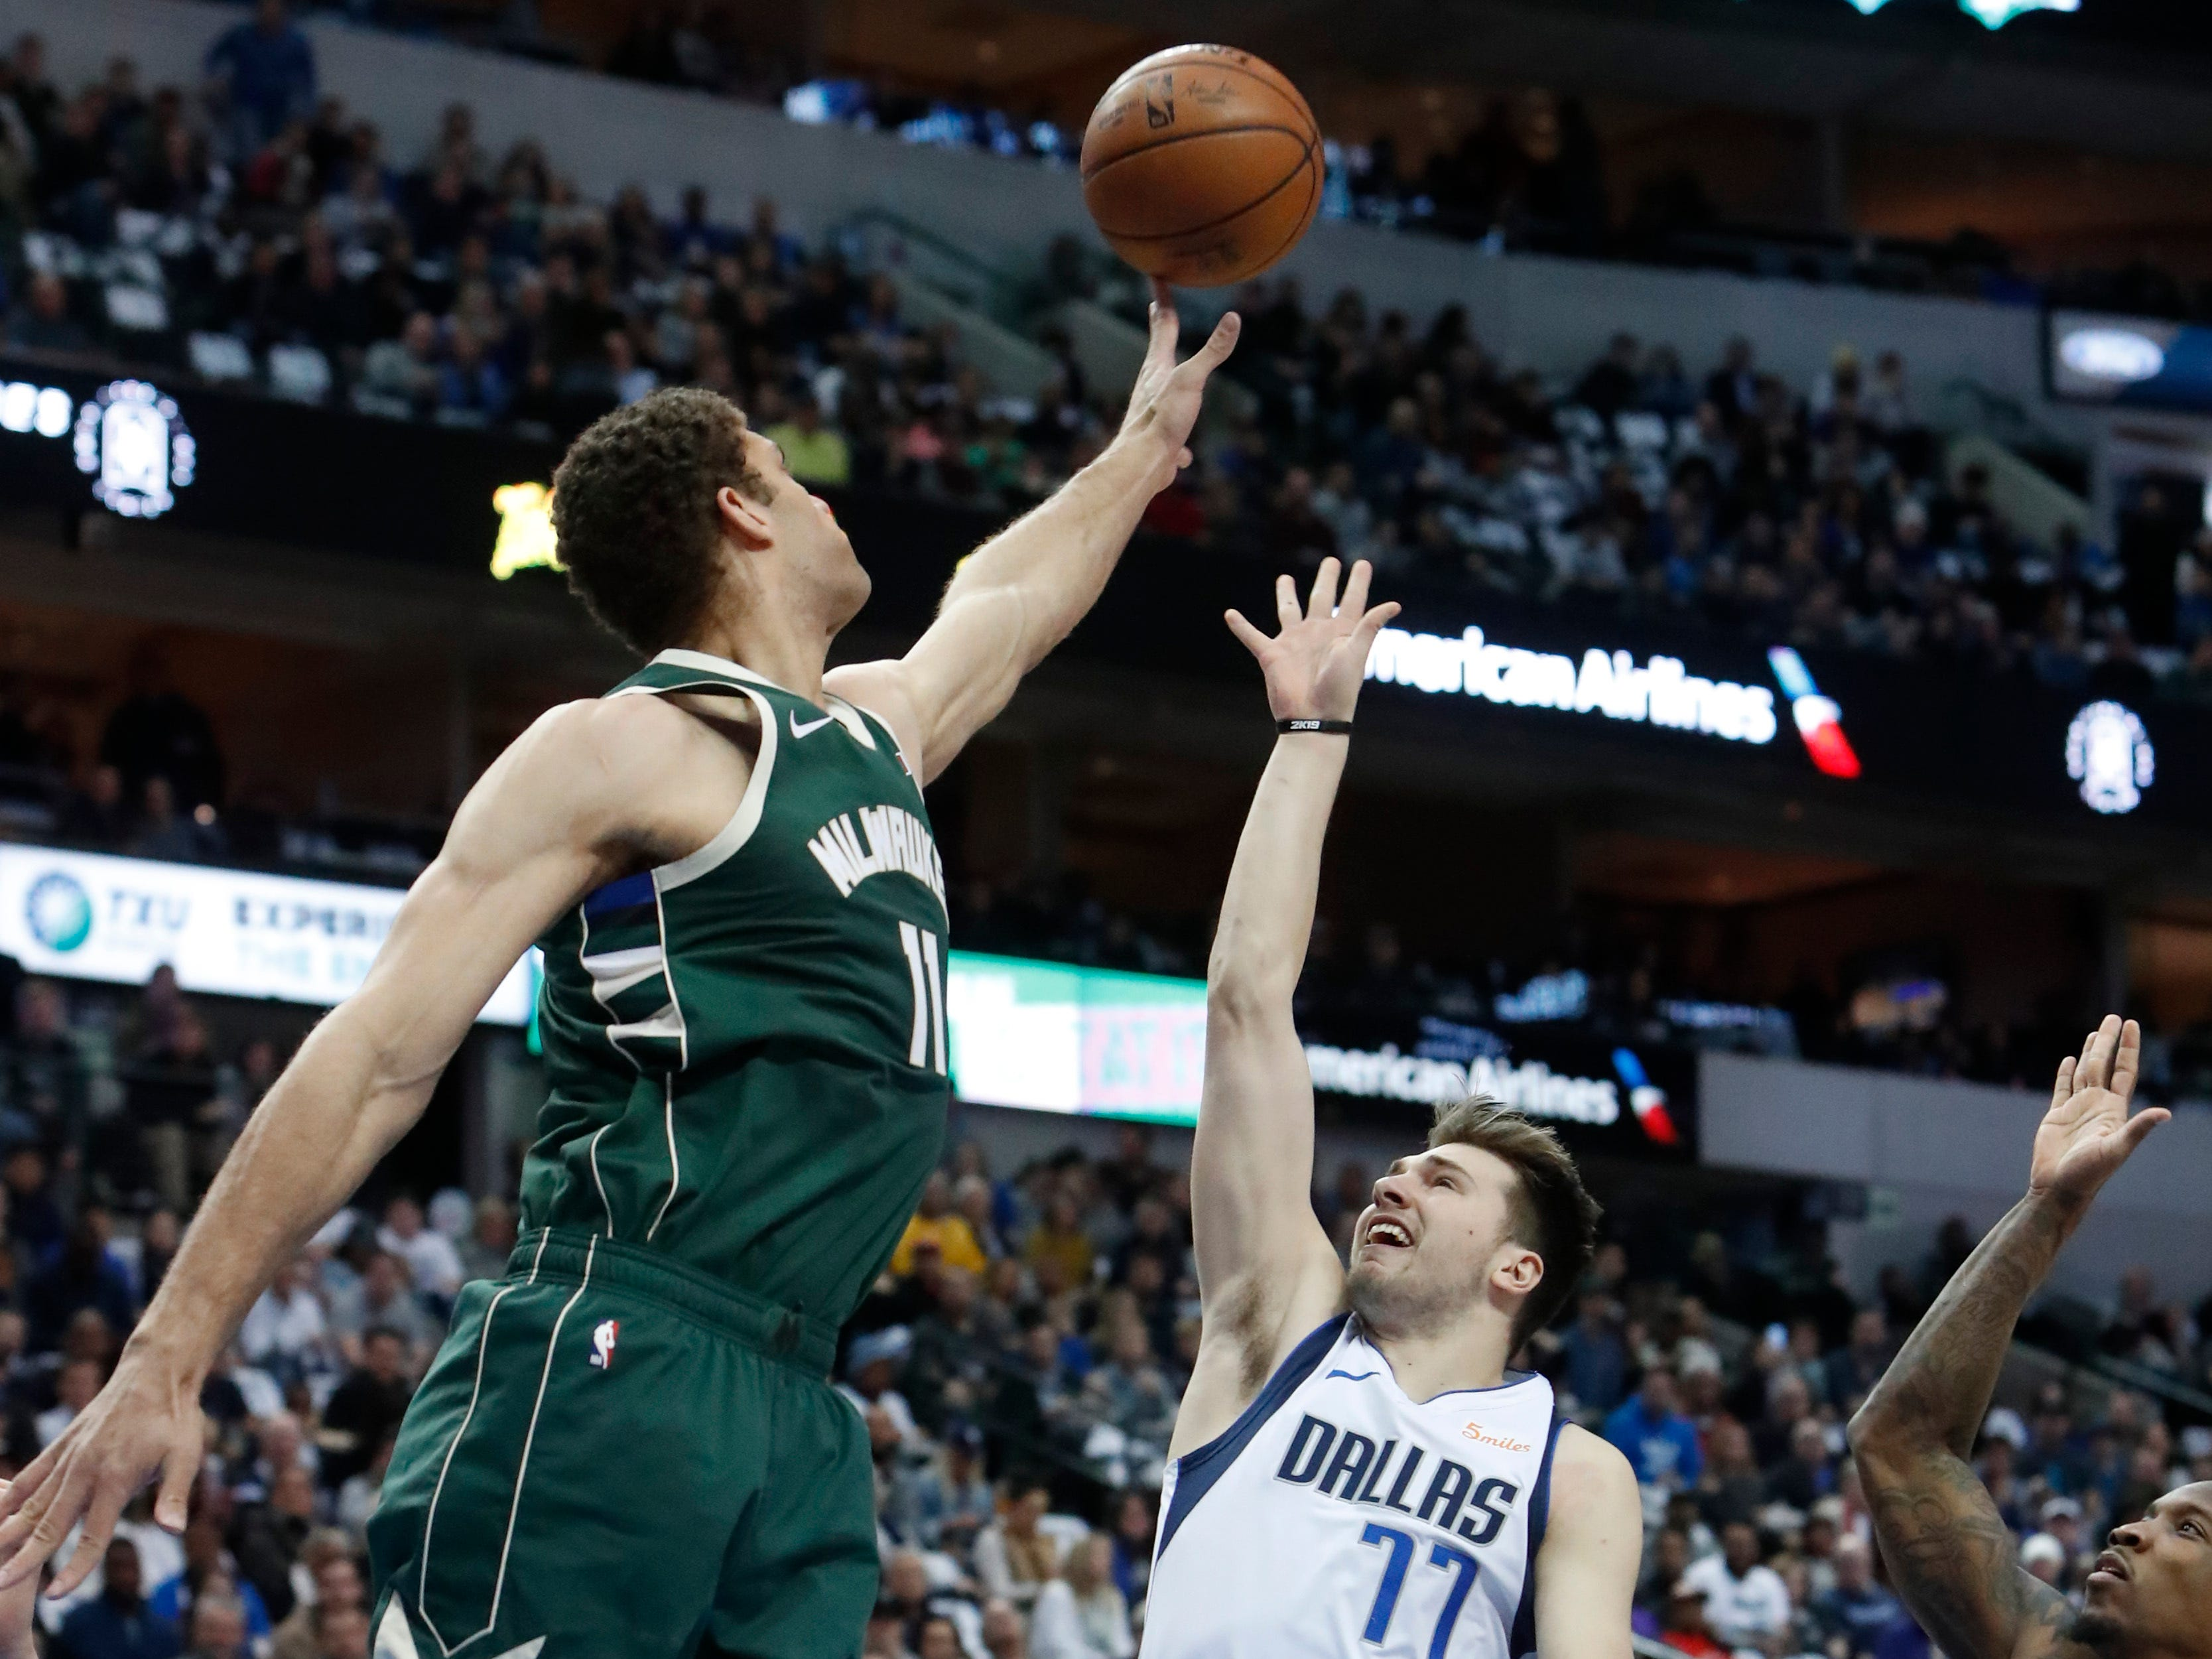 Bucks center Brook Lopez blocks a shot by Mavericks forward Luka Doncic  during the second half Friday night.